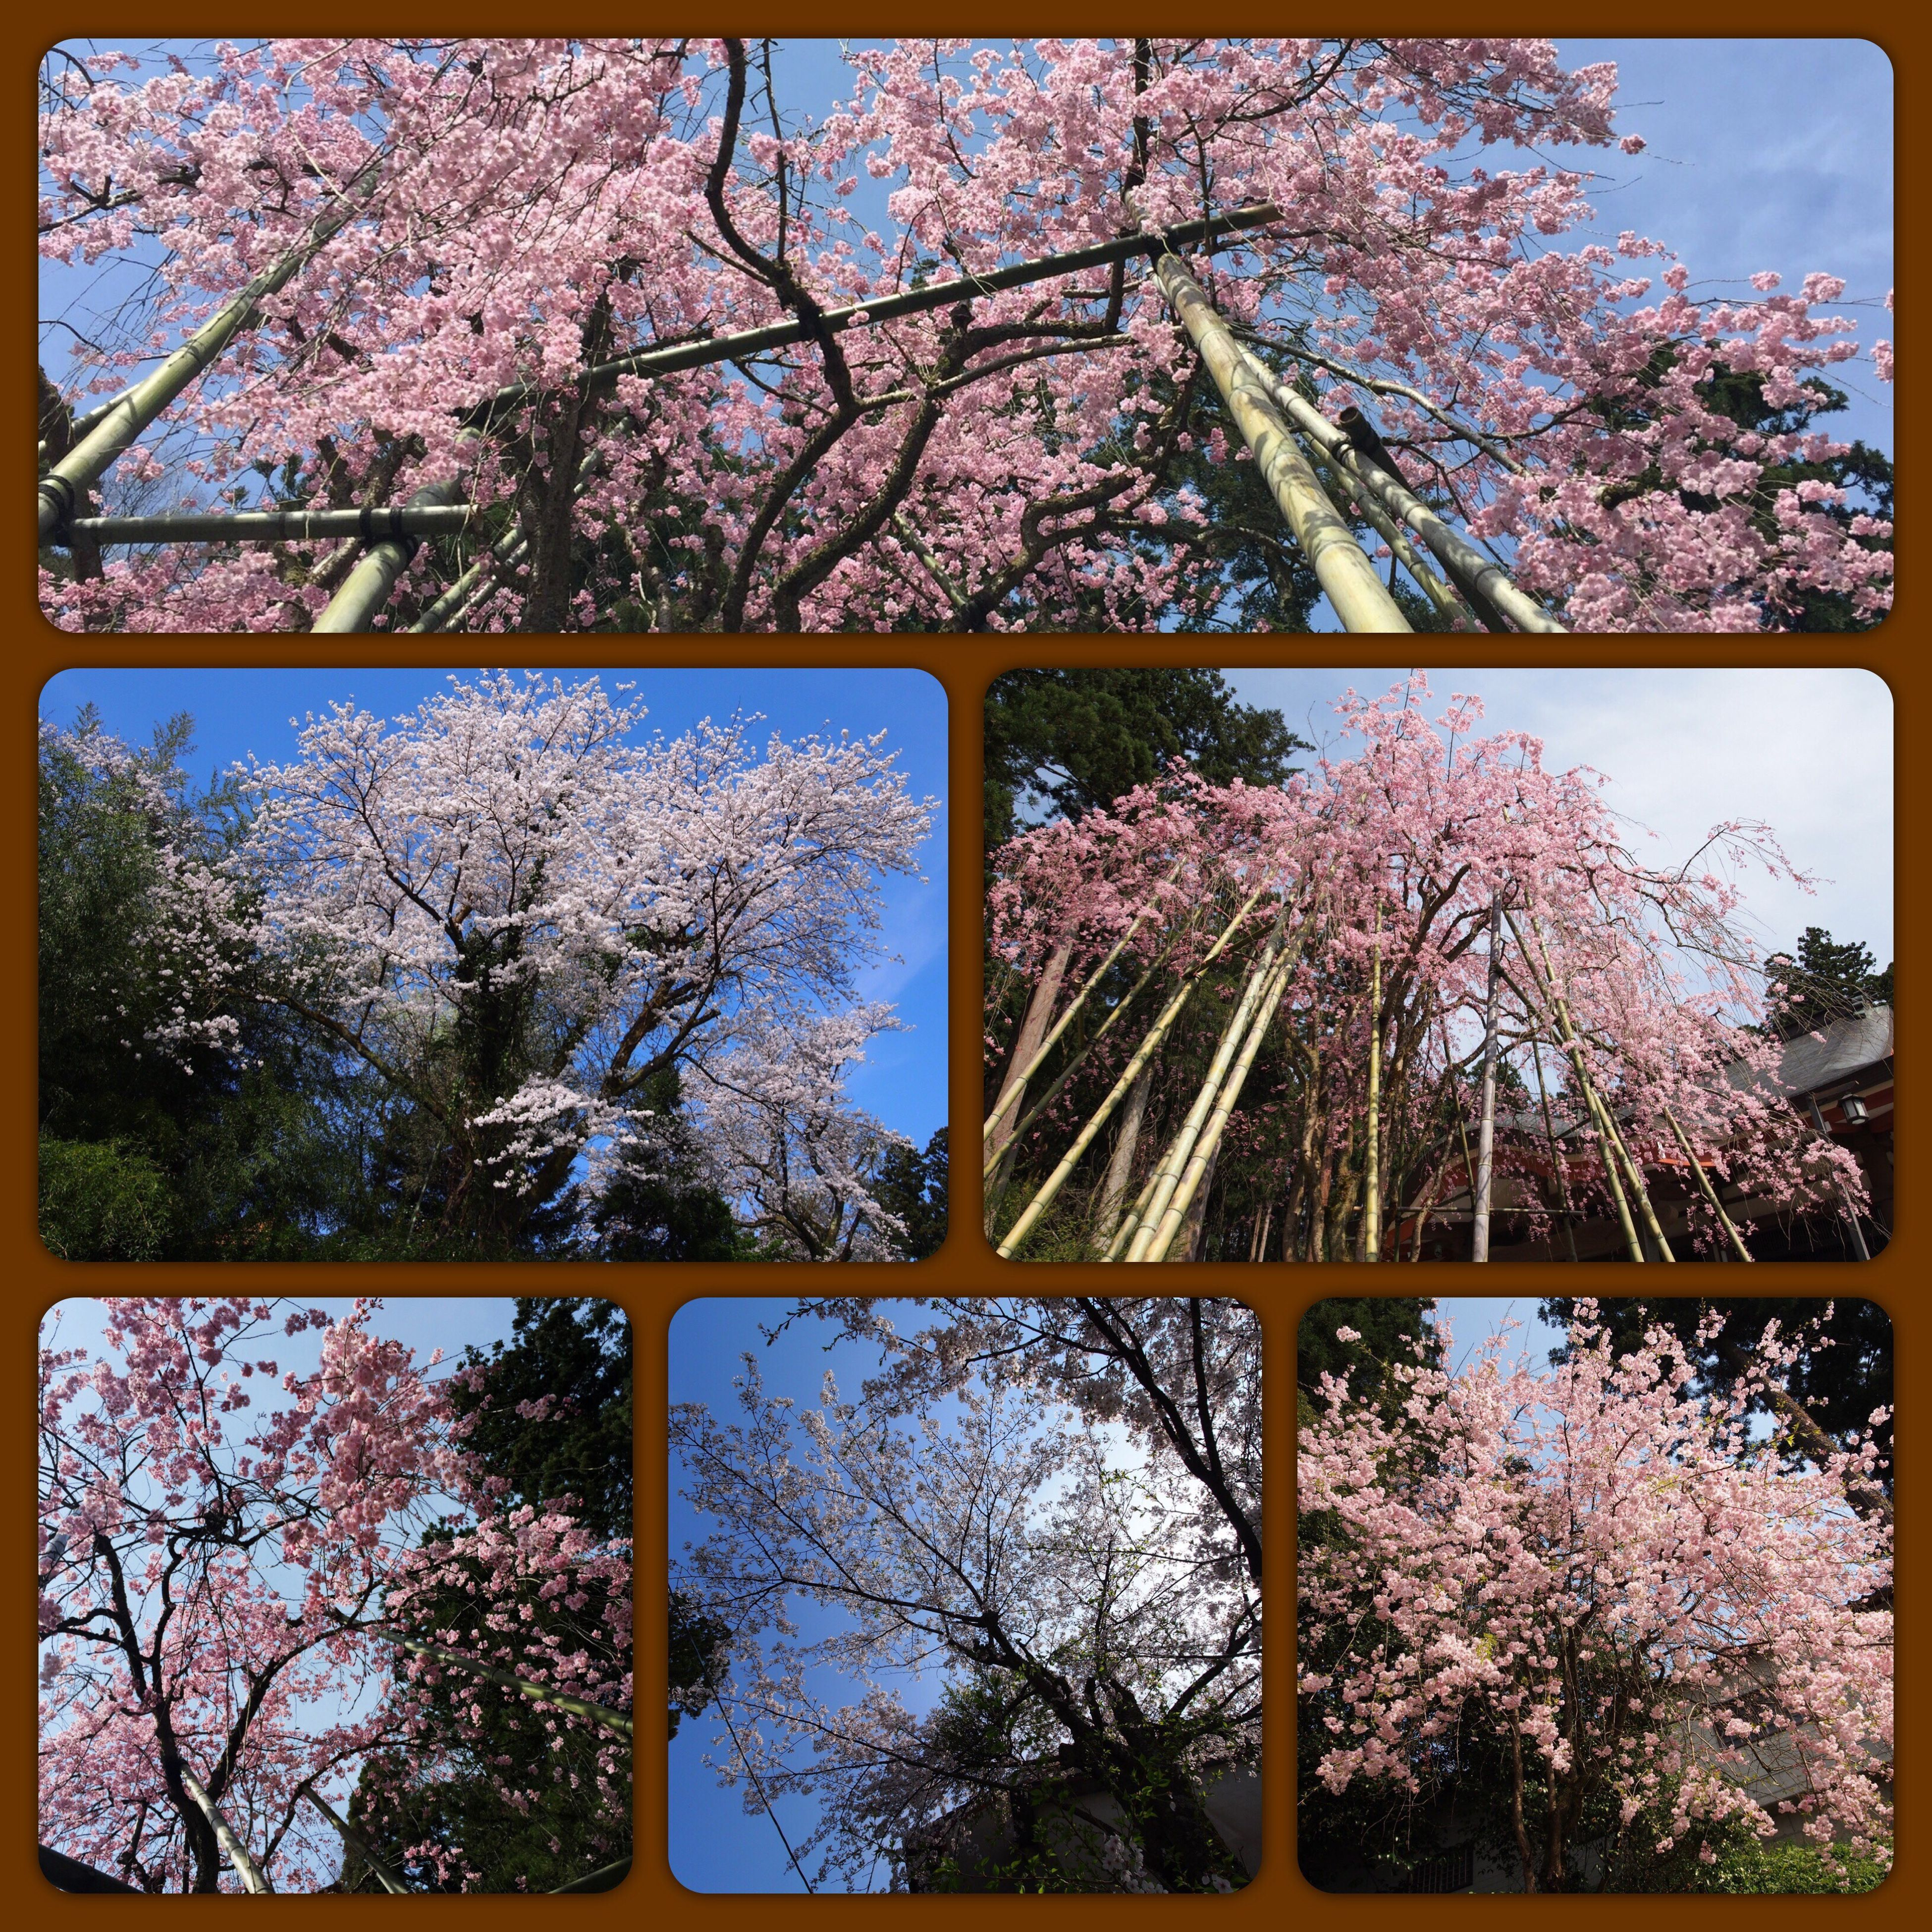 tree, sky, growth, no people, nature, day, branch, beauty in nature, outdoors, low angle view, flower, digitally generated